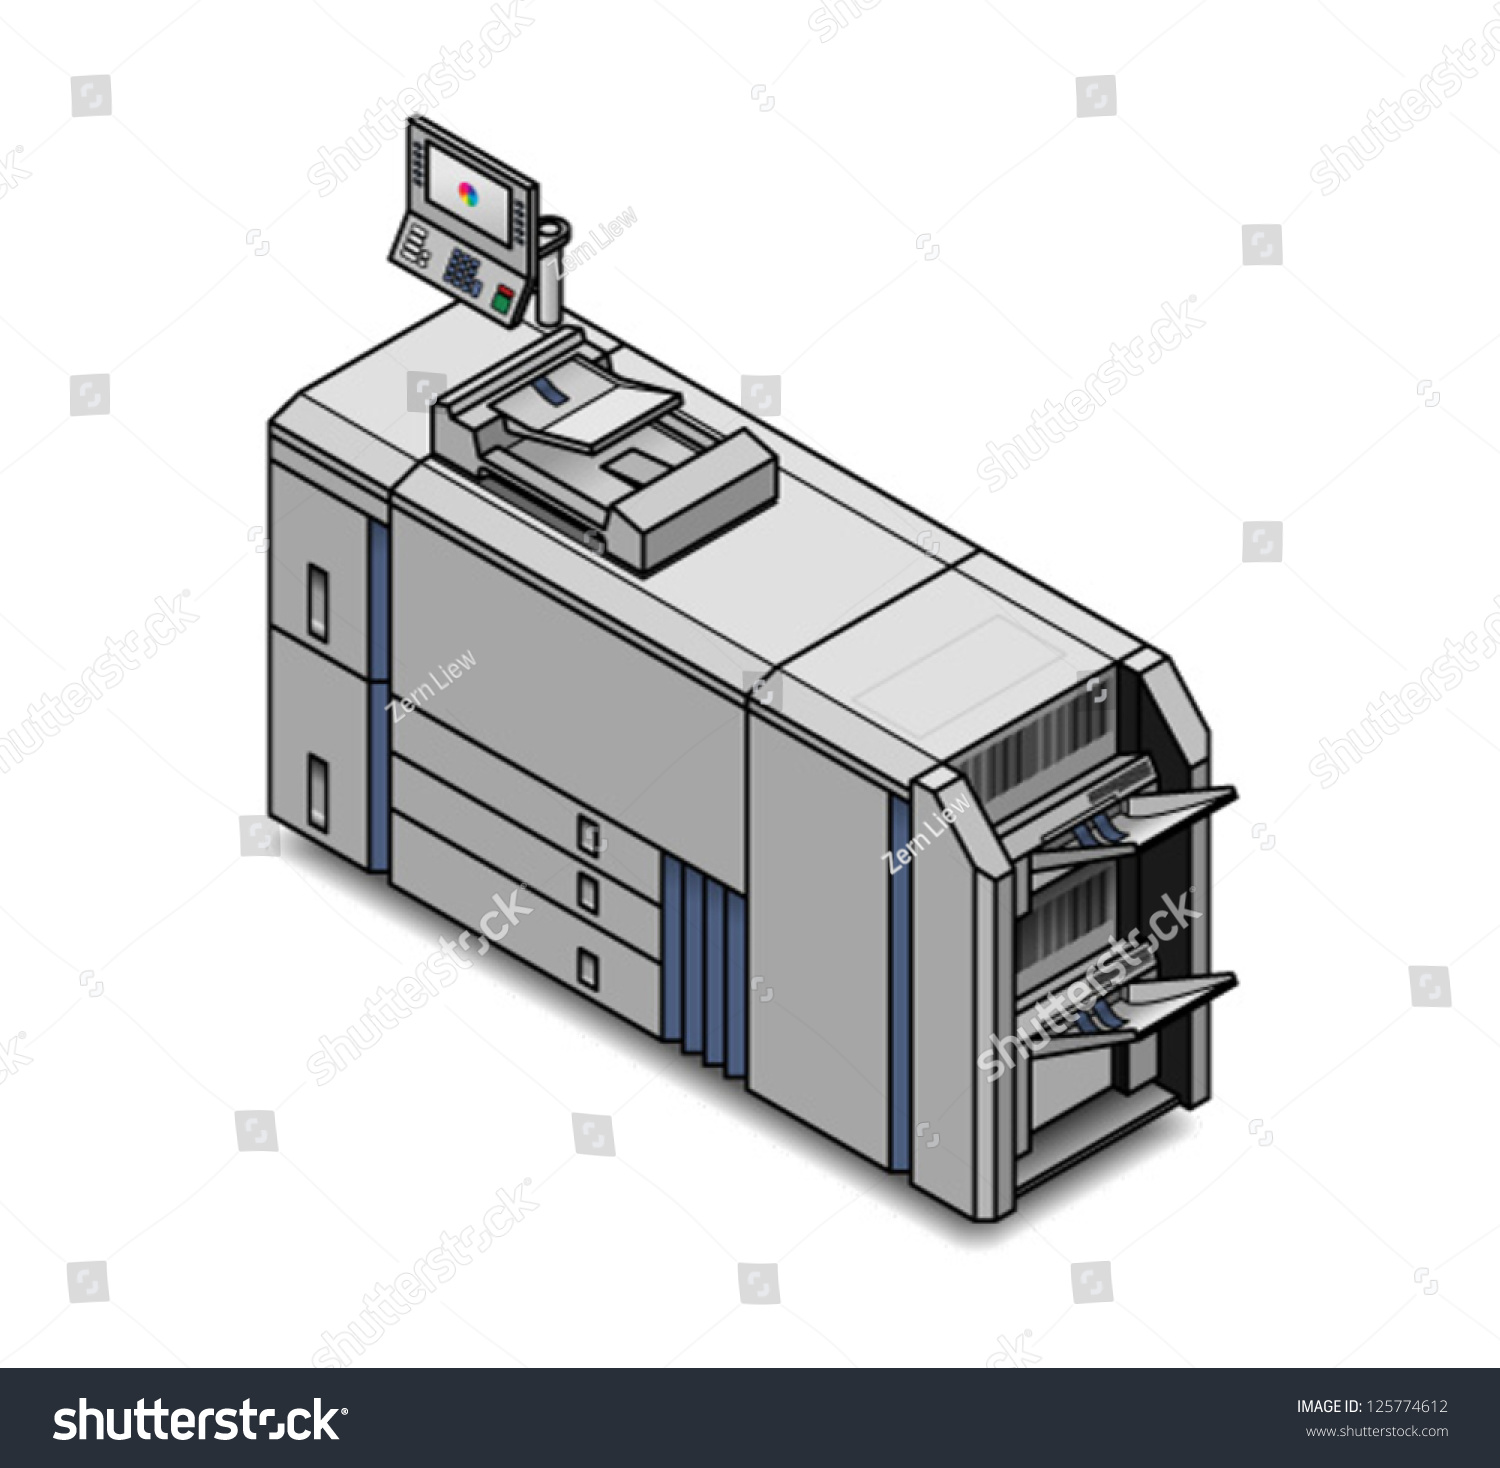 A Small Digital Press Copier Scanner Printer Publisher Ez Canvas Diagram Of Id 125774612